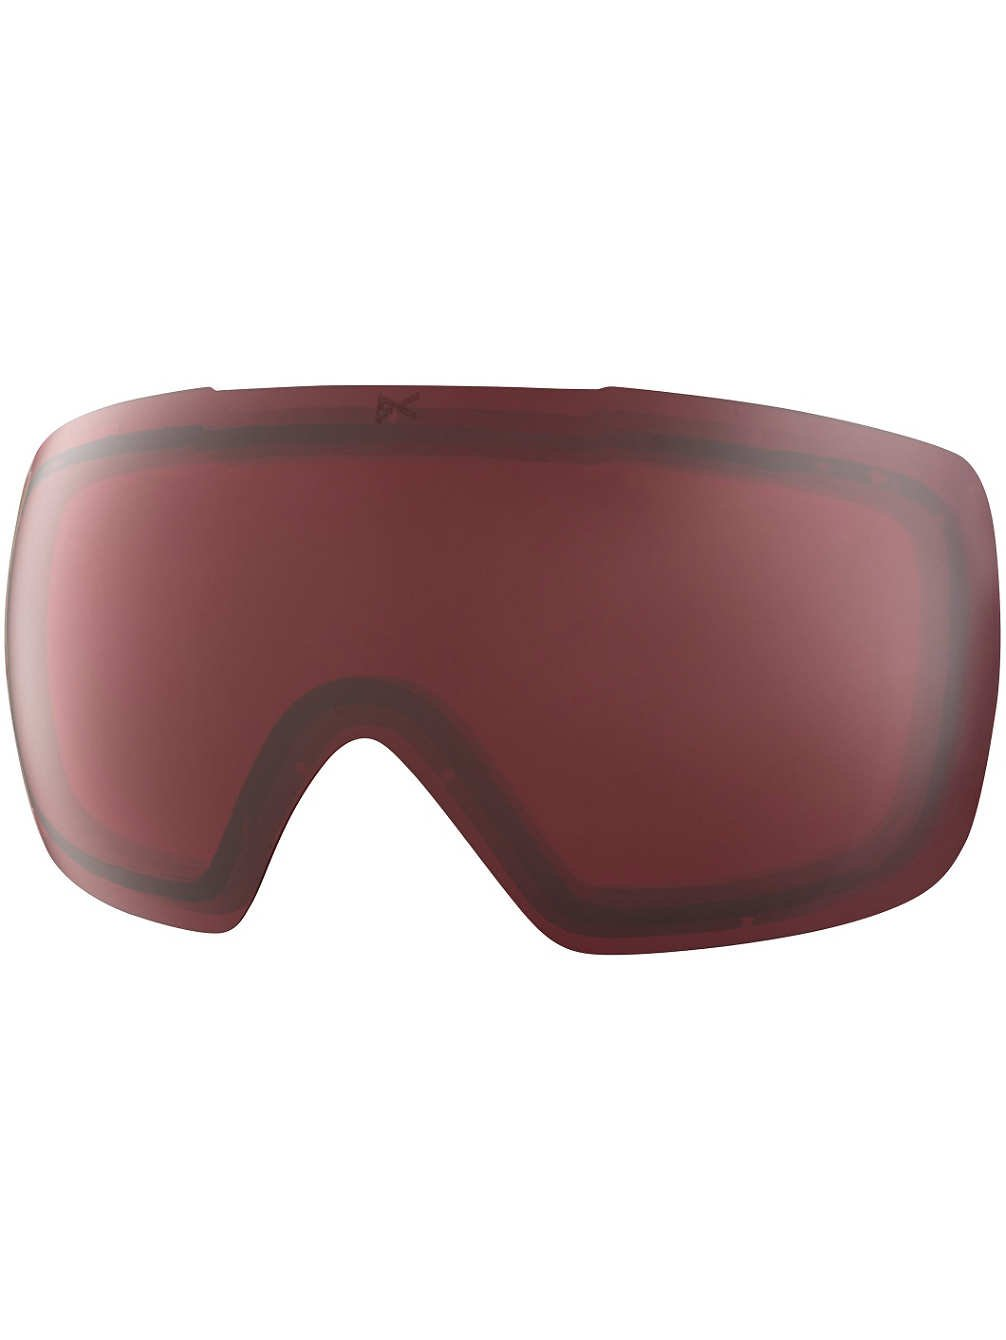 Anon Mig Snow Goggle Replacement Lens Silver Rose 35% VLT by Anon